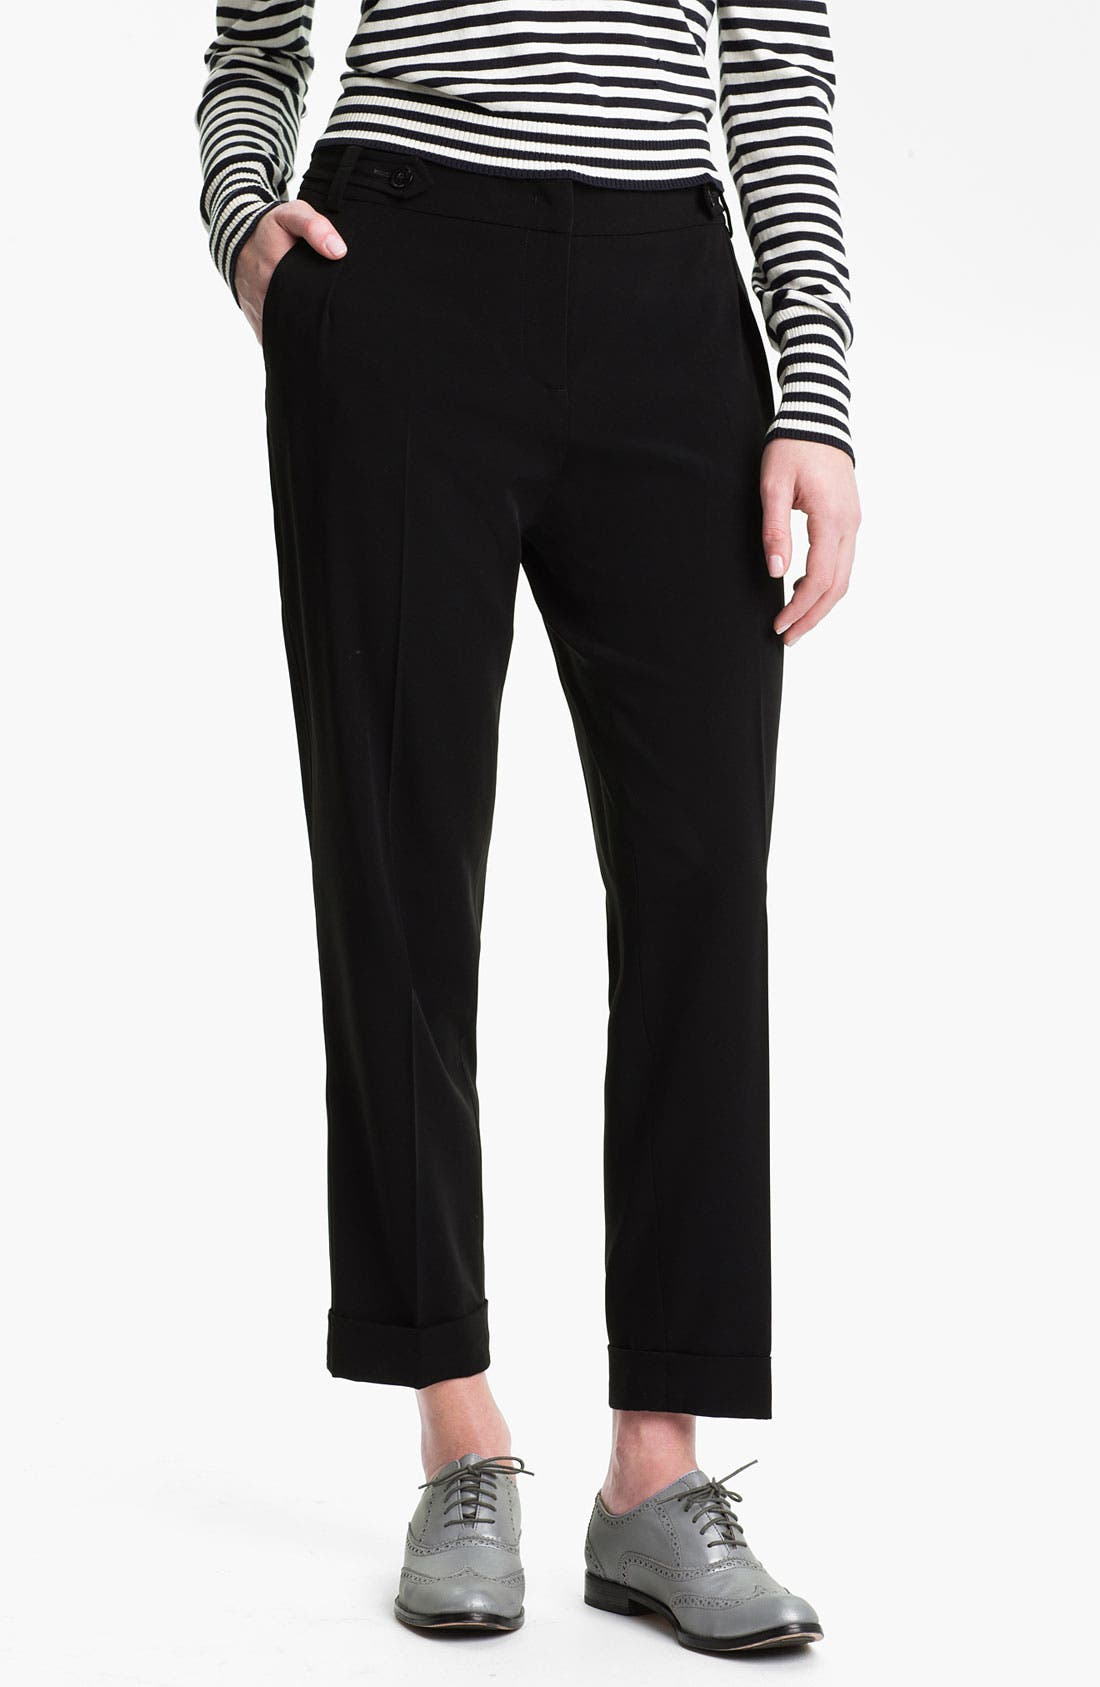 Main Image - Weekend Max Mara 'Gerona' Slim Ankle Pants